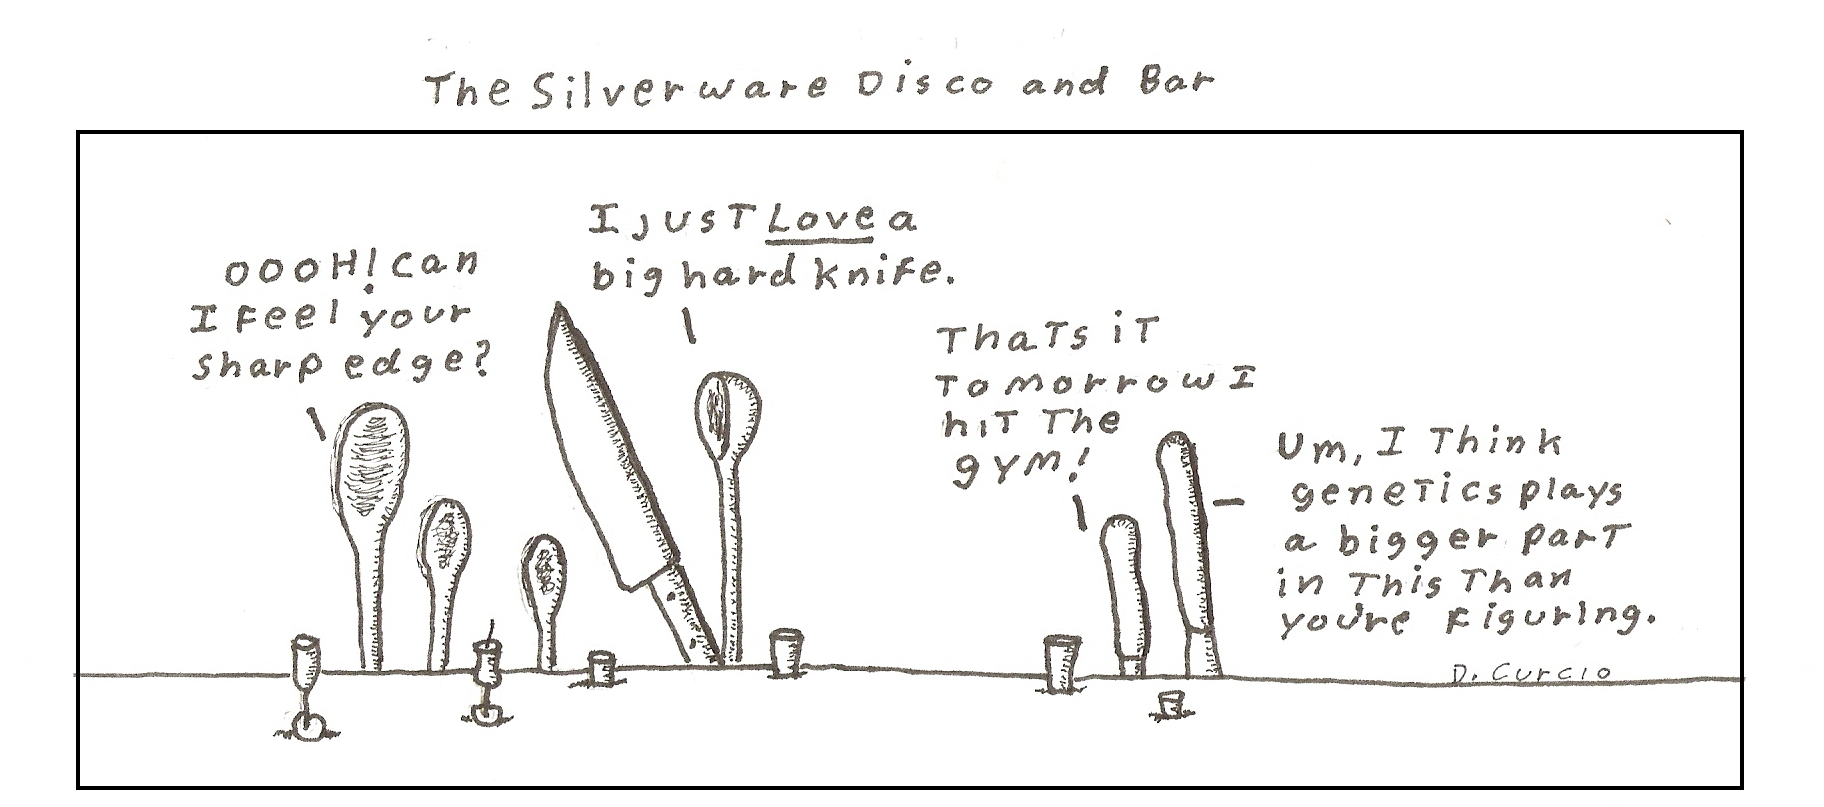 Silverware Disco And Bar 2